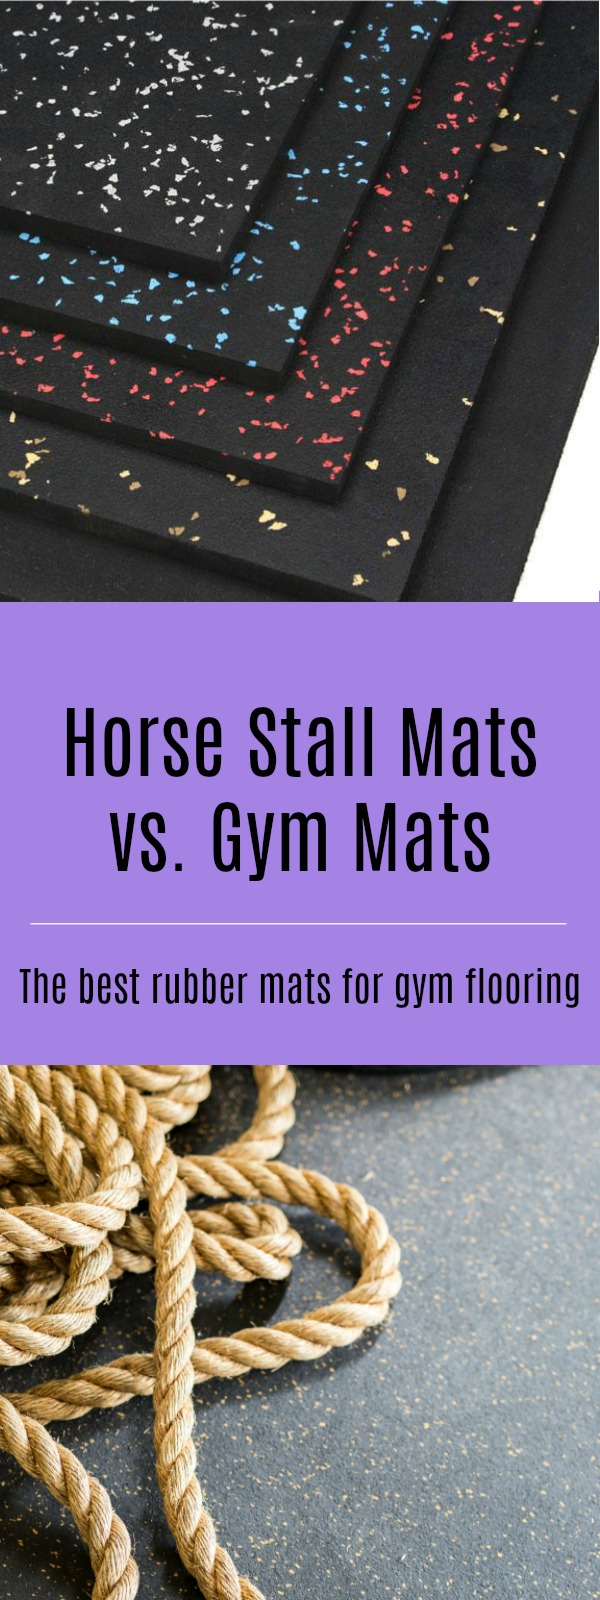 Horse Stall Mats Vs Gym Floor Mats Which Are Better For Gym